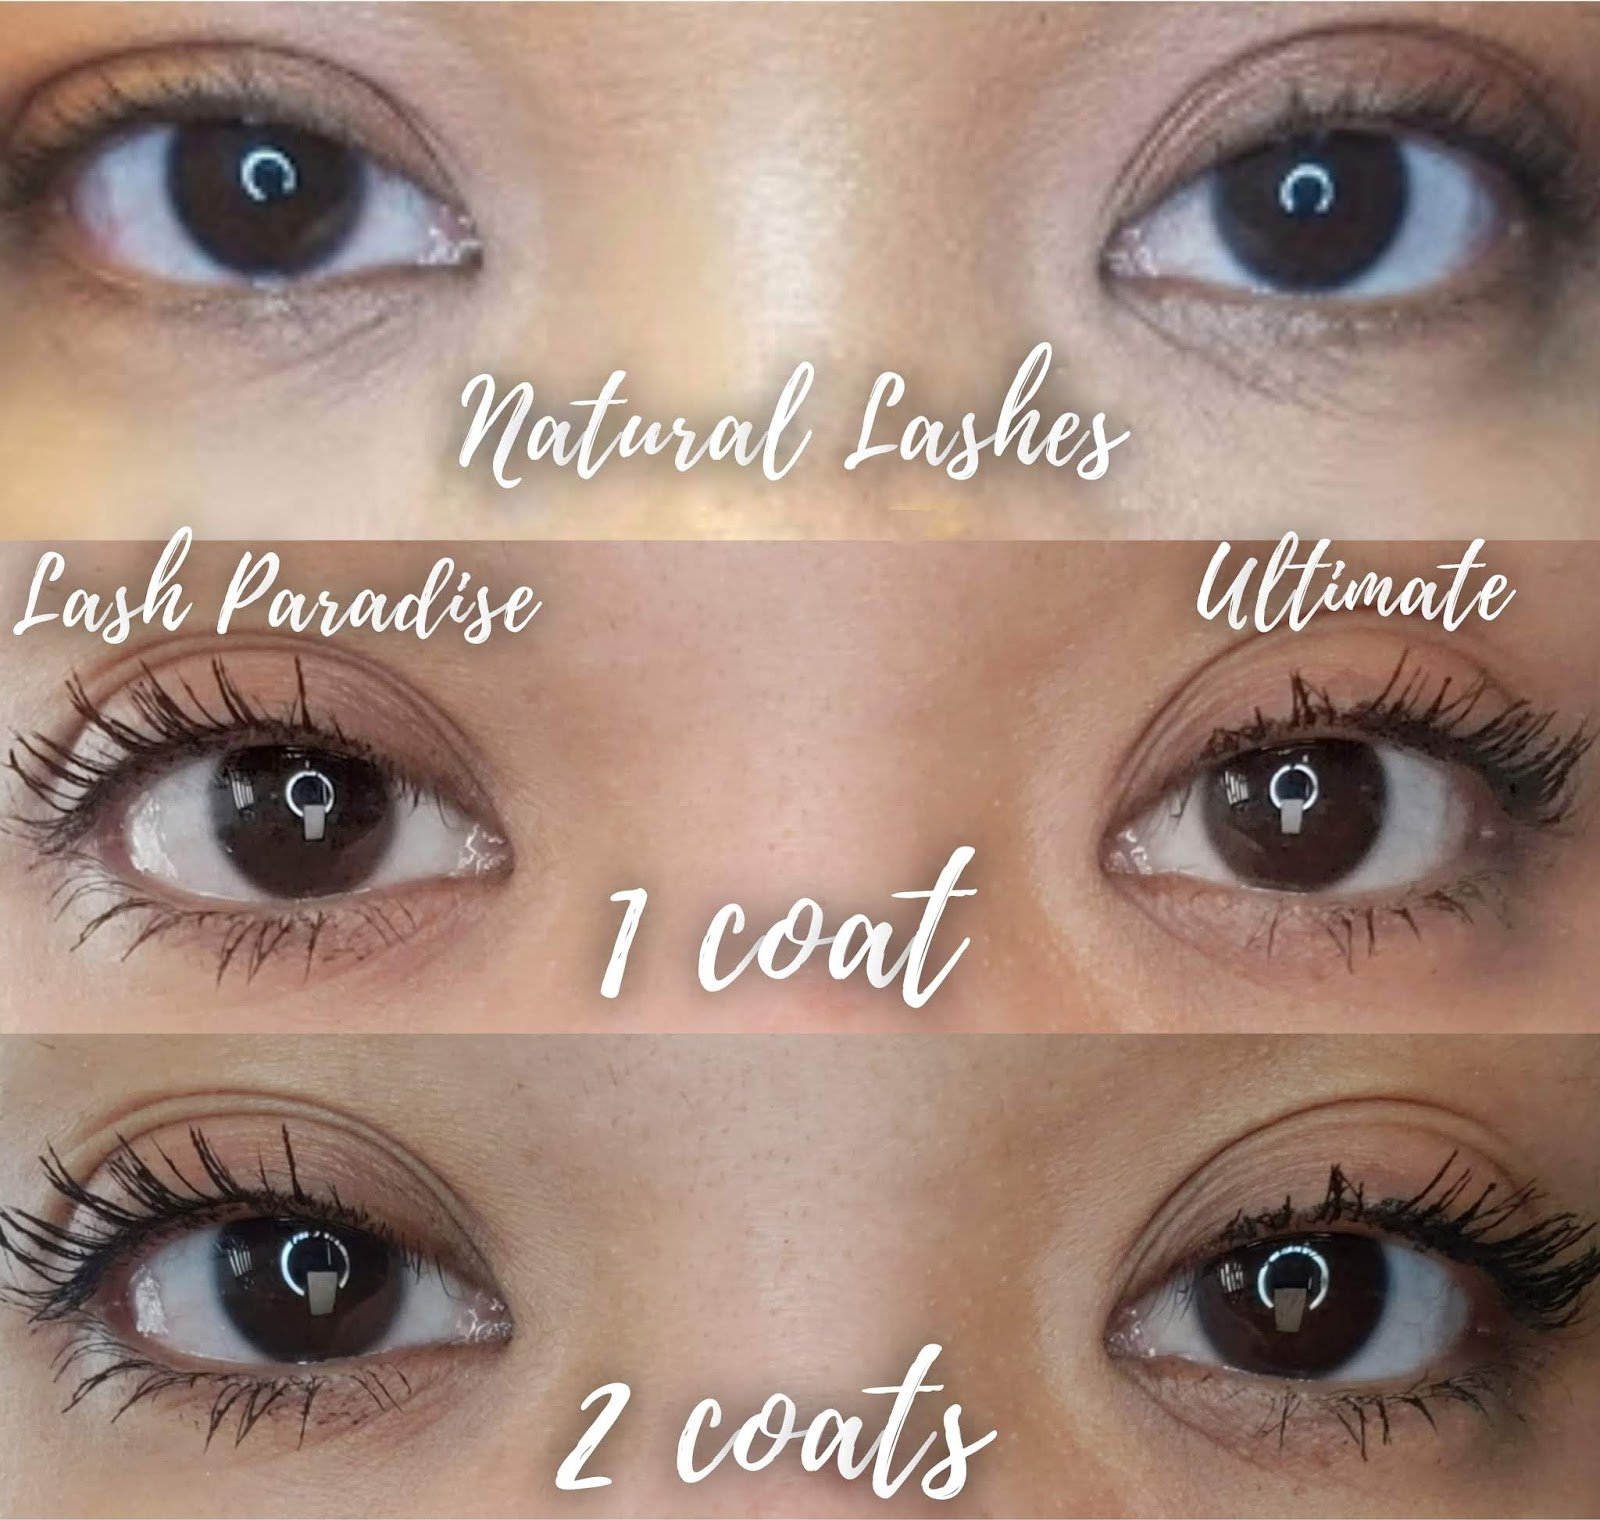 1e47fa5c5be L'Oreal Paris Unlimited Mascara - Money Conscious Mommy